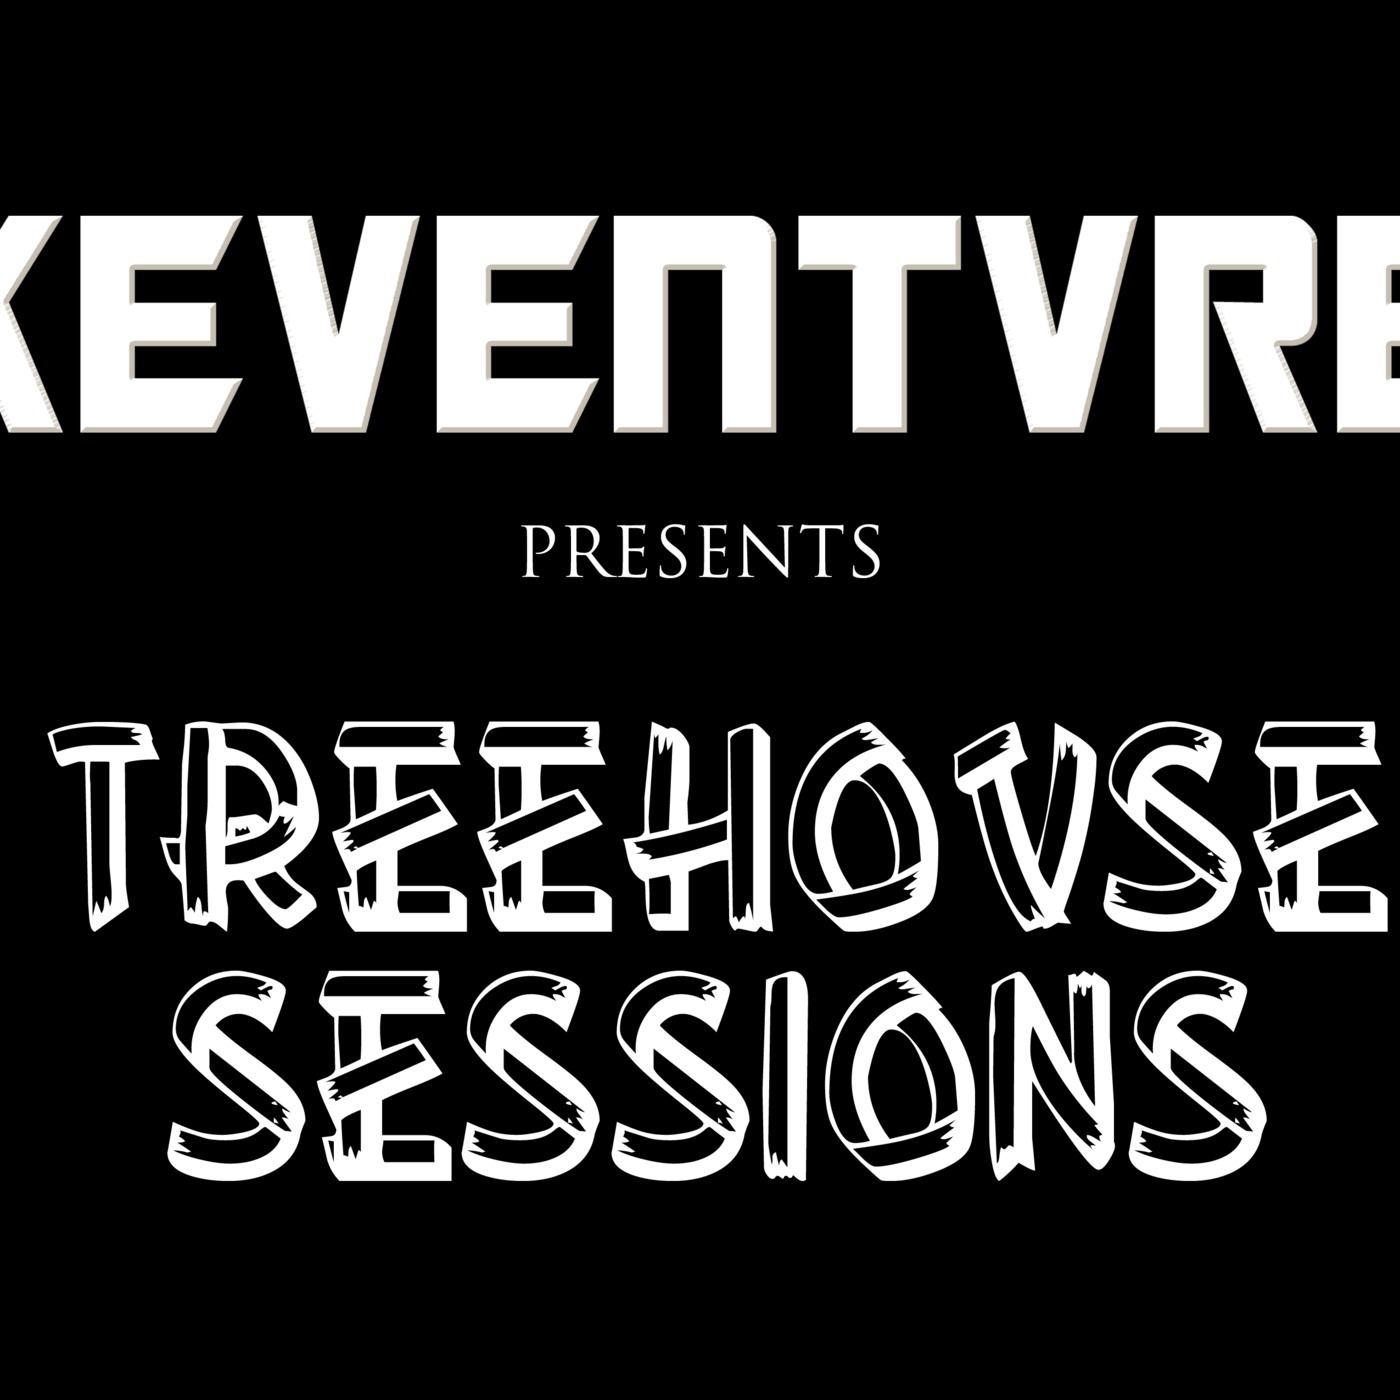 Treehovse Sessions by Keventvre